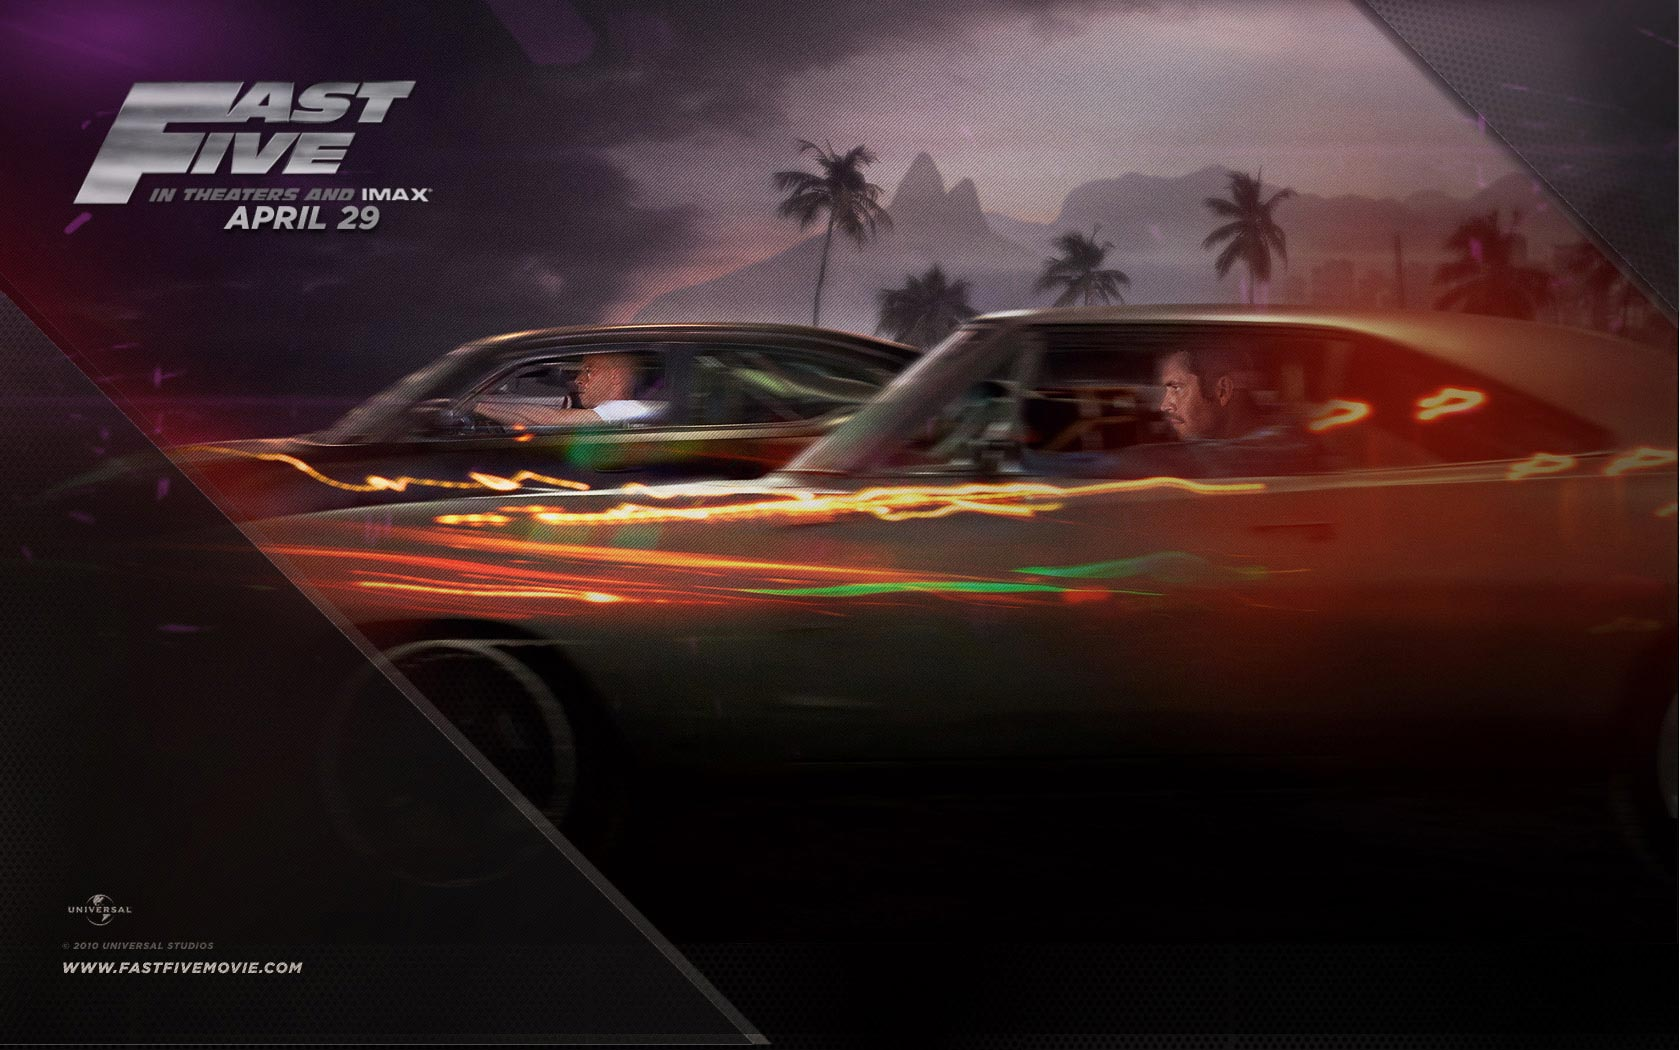 Movie Posters Images Fast Five Hd Wallpaper And Background Photos